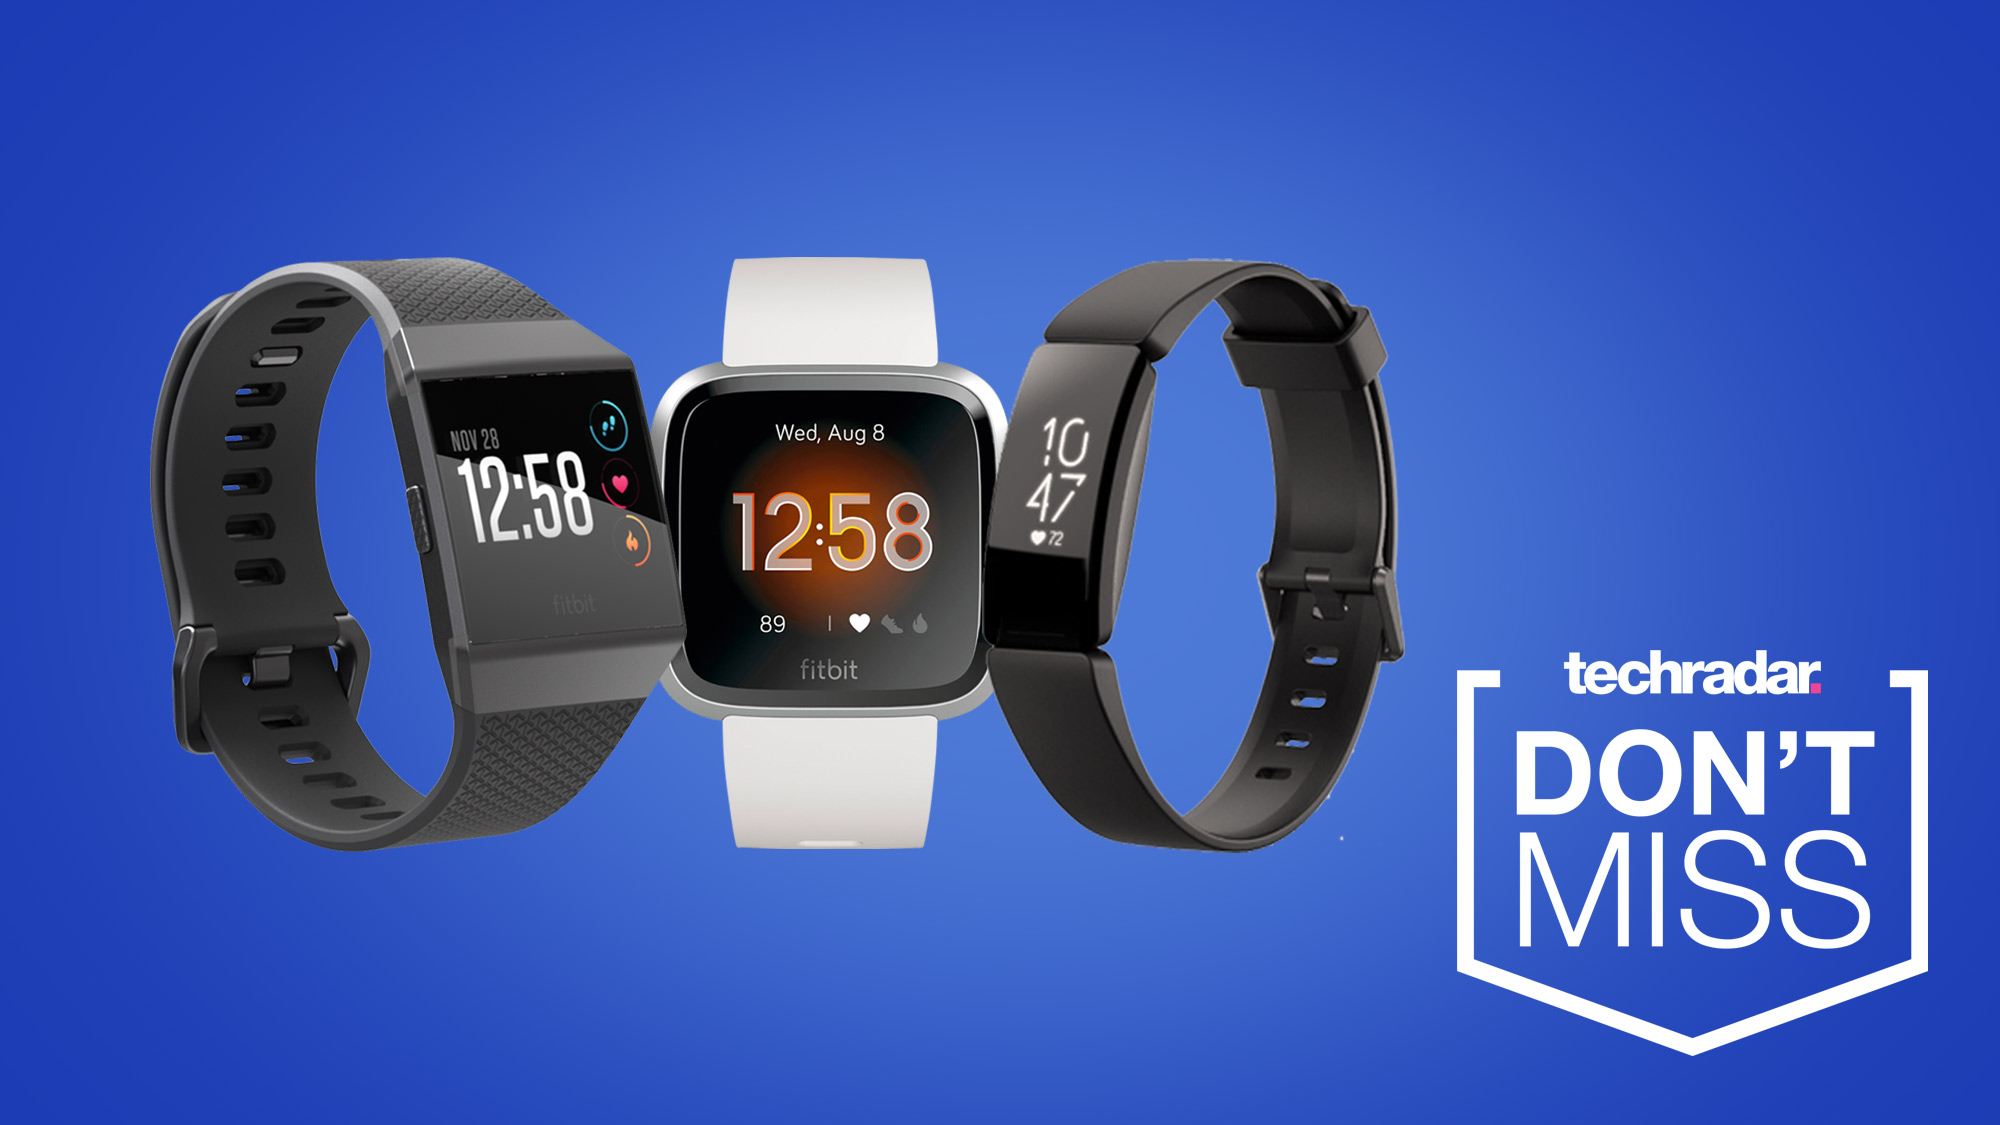 Save on cheap Fitbits with this weekend's fitness tracker sales thumbnail